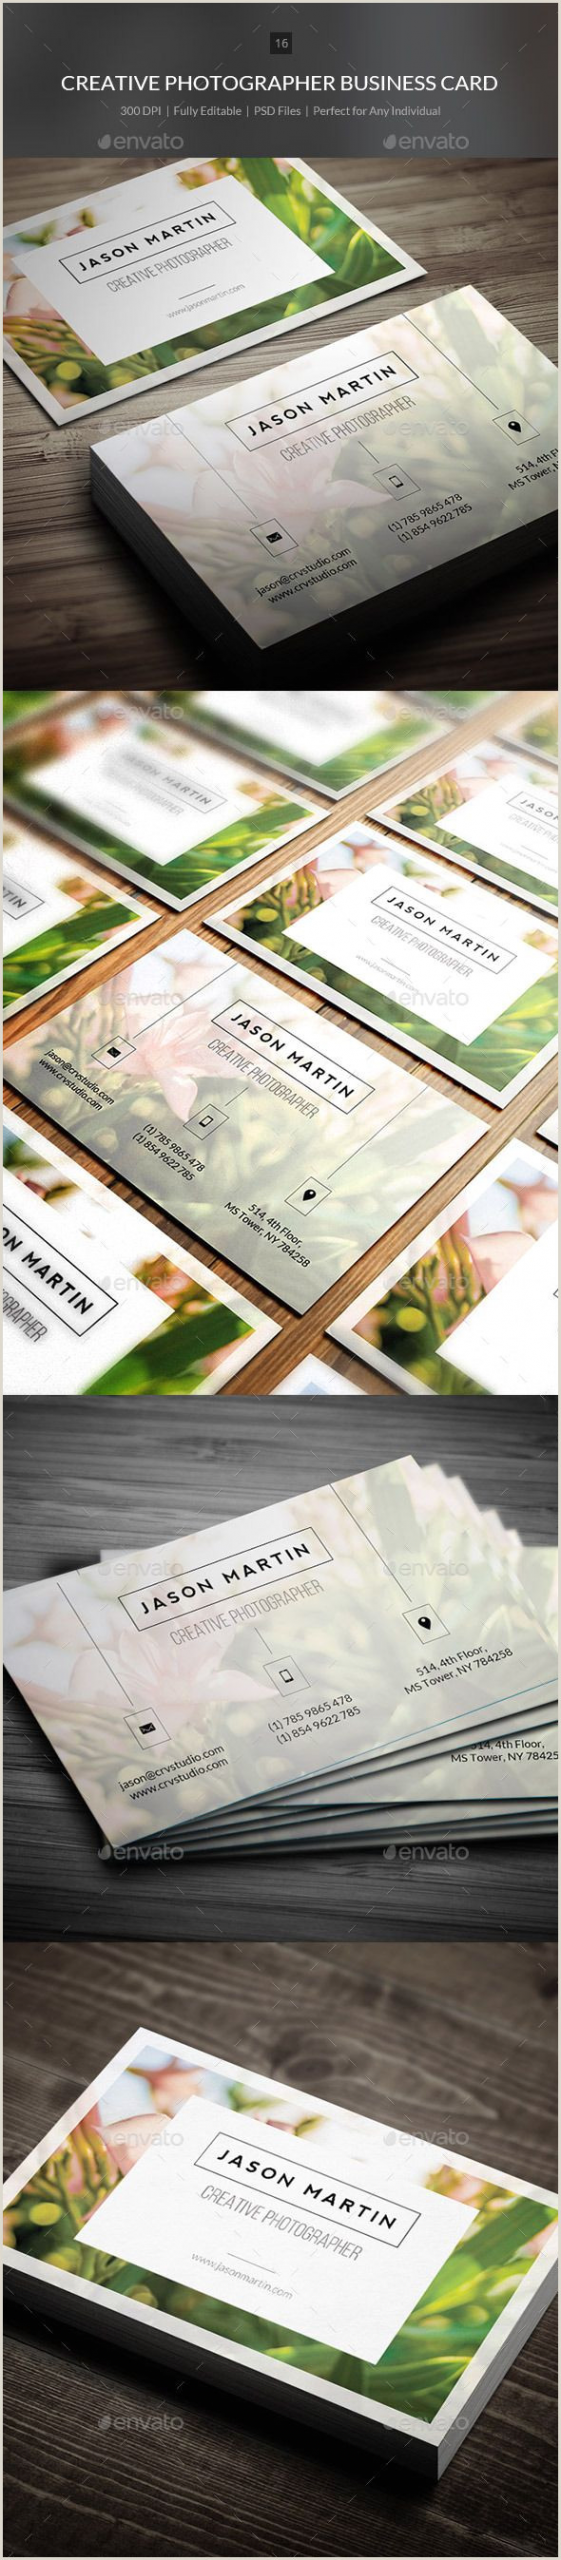 Creative Photography Business Cards Creative Grapher Business Card 14